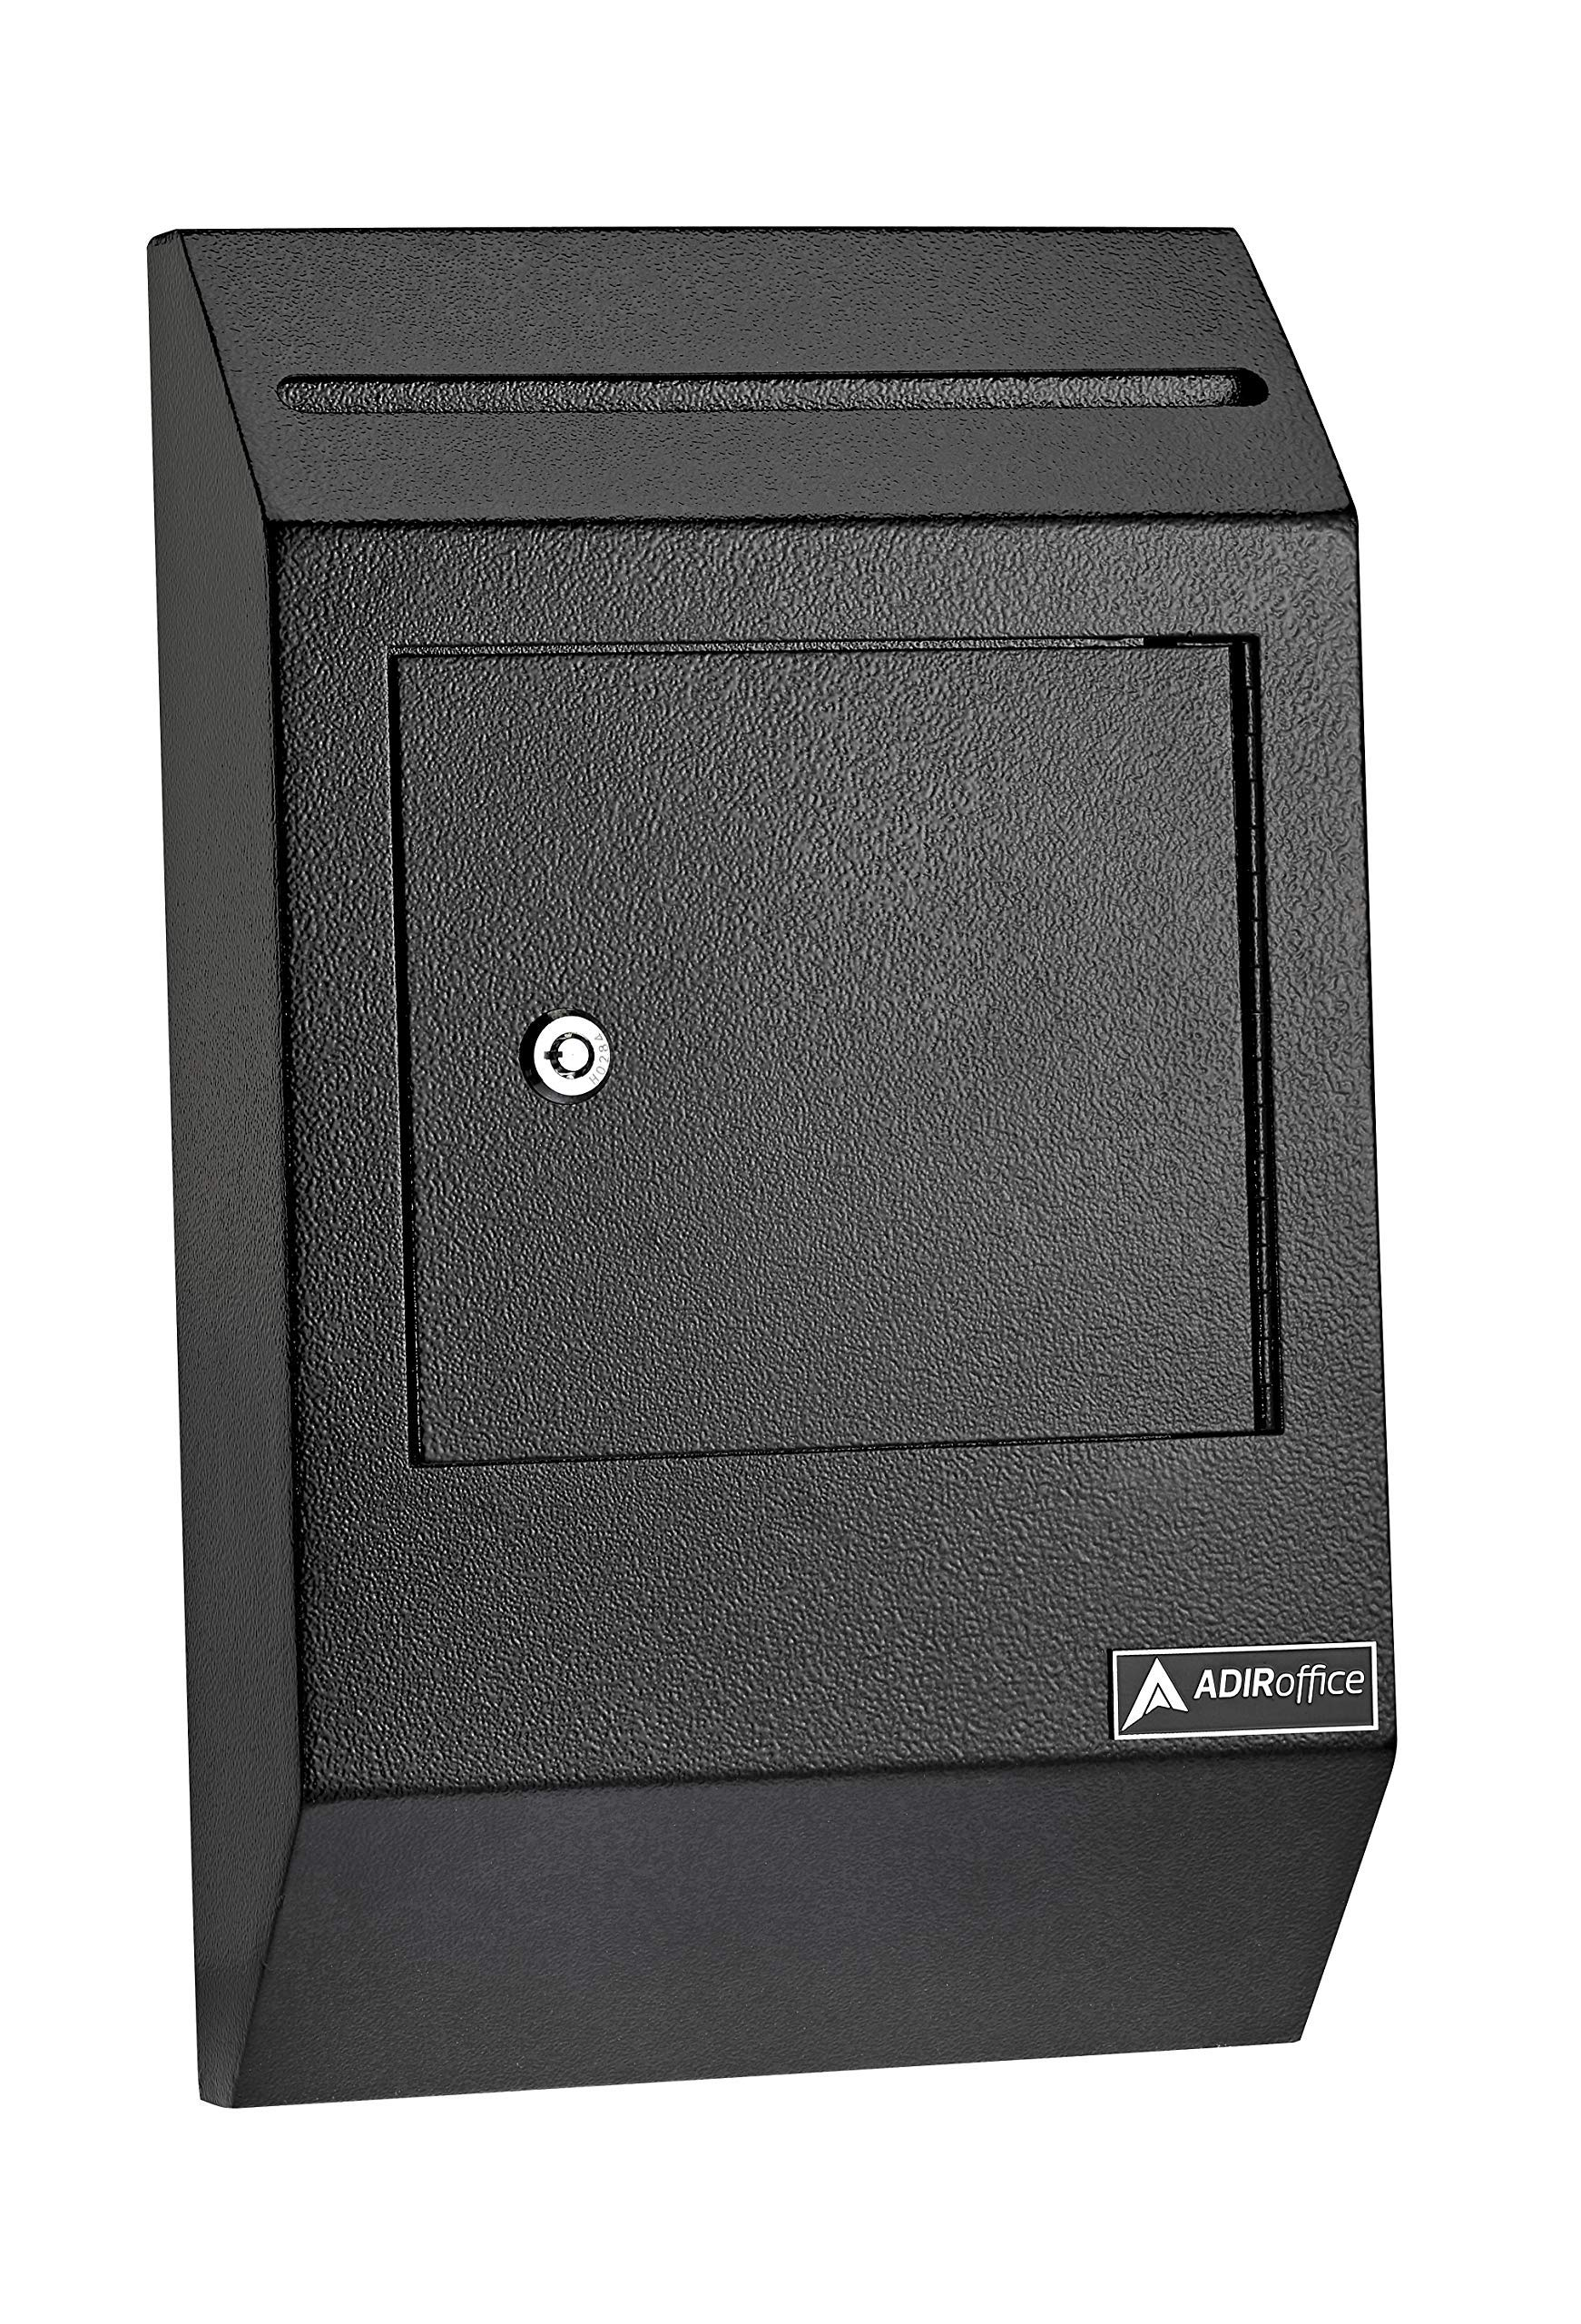 AdirOffice Drop Box - Heavy Duty Secured Storage with Lock - for Commercial Home Office or Business Use (Black) by AdirOffice